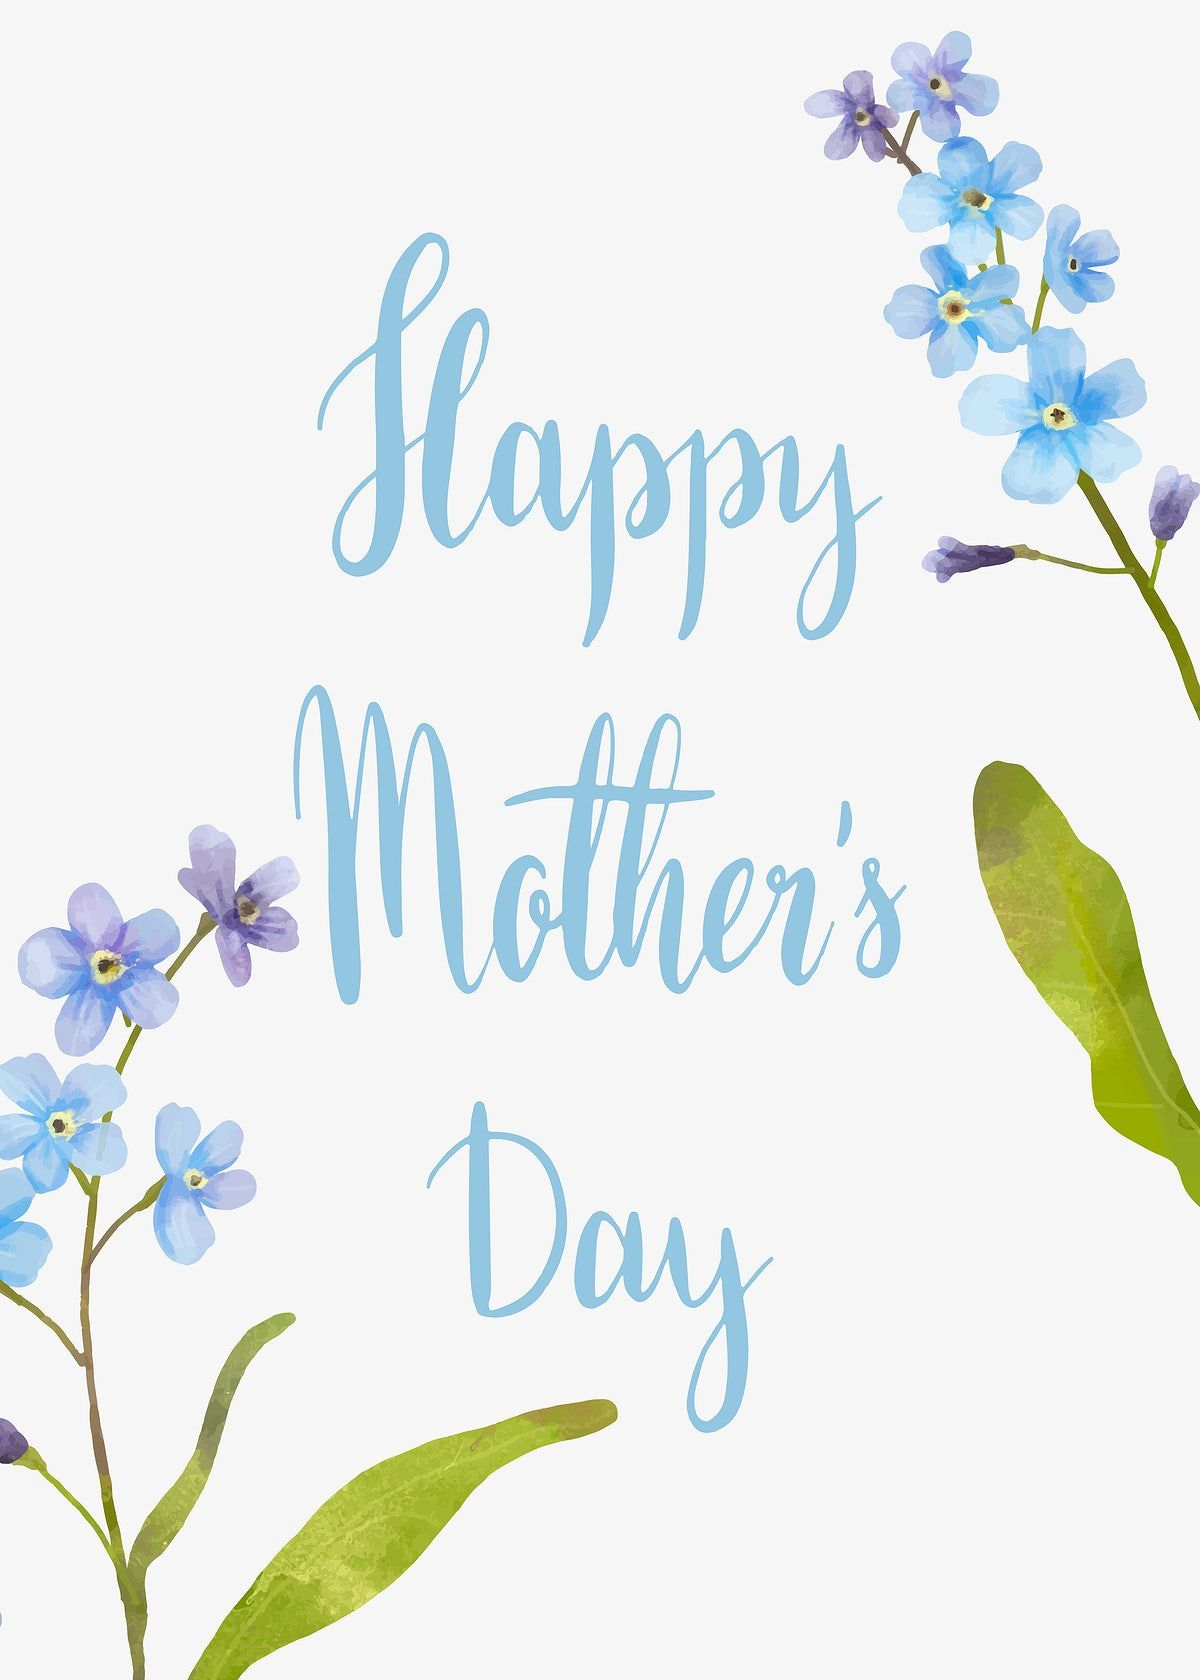 Download premium vector of Happy Mother's Day card vector 845981